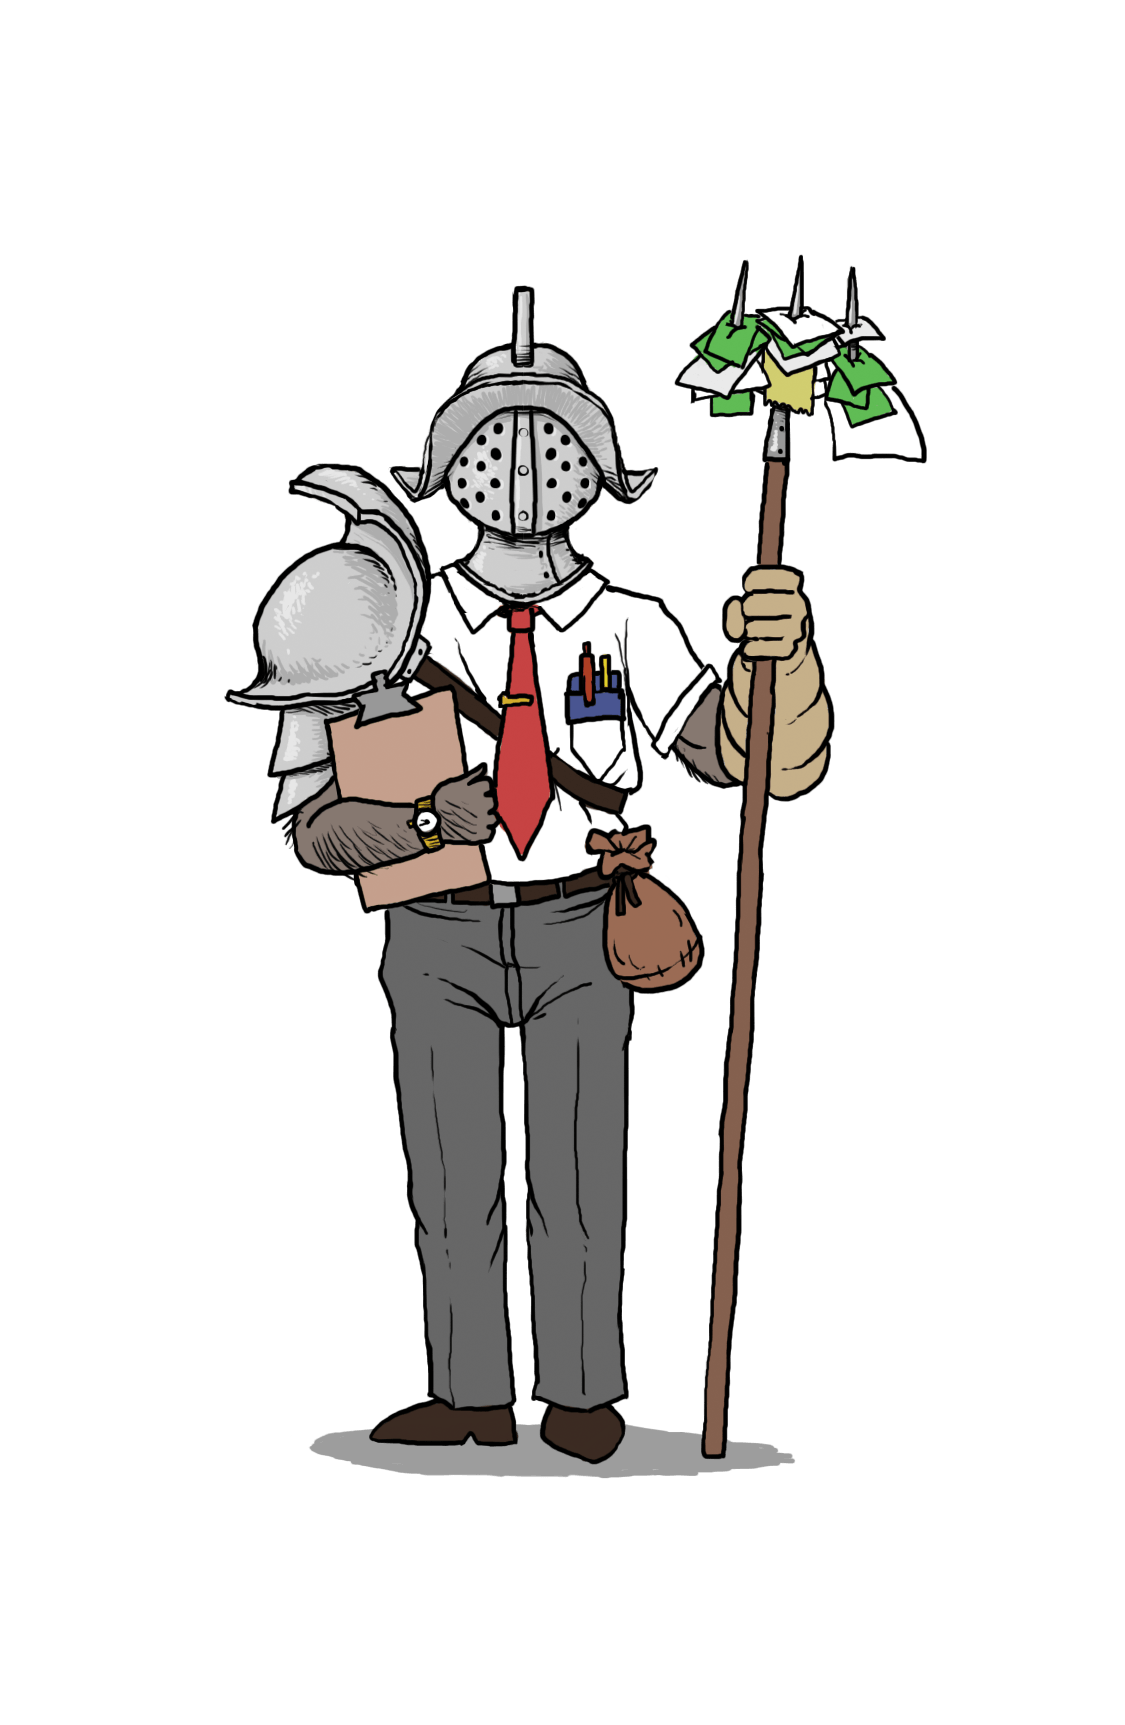 clipart download Bean drawing gladiator. The company bard